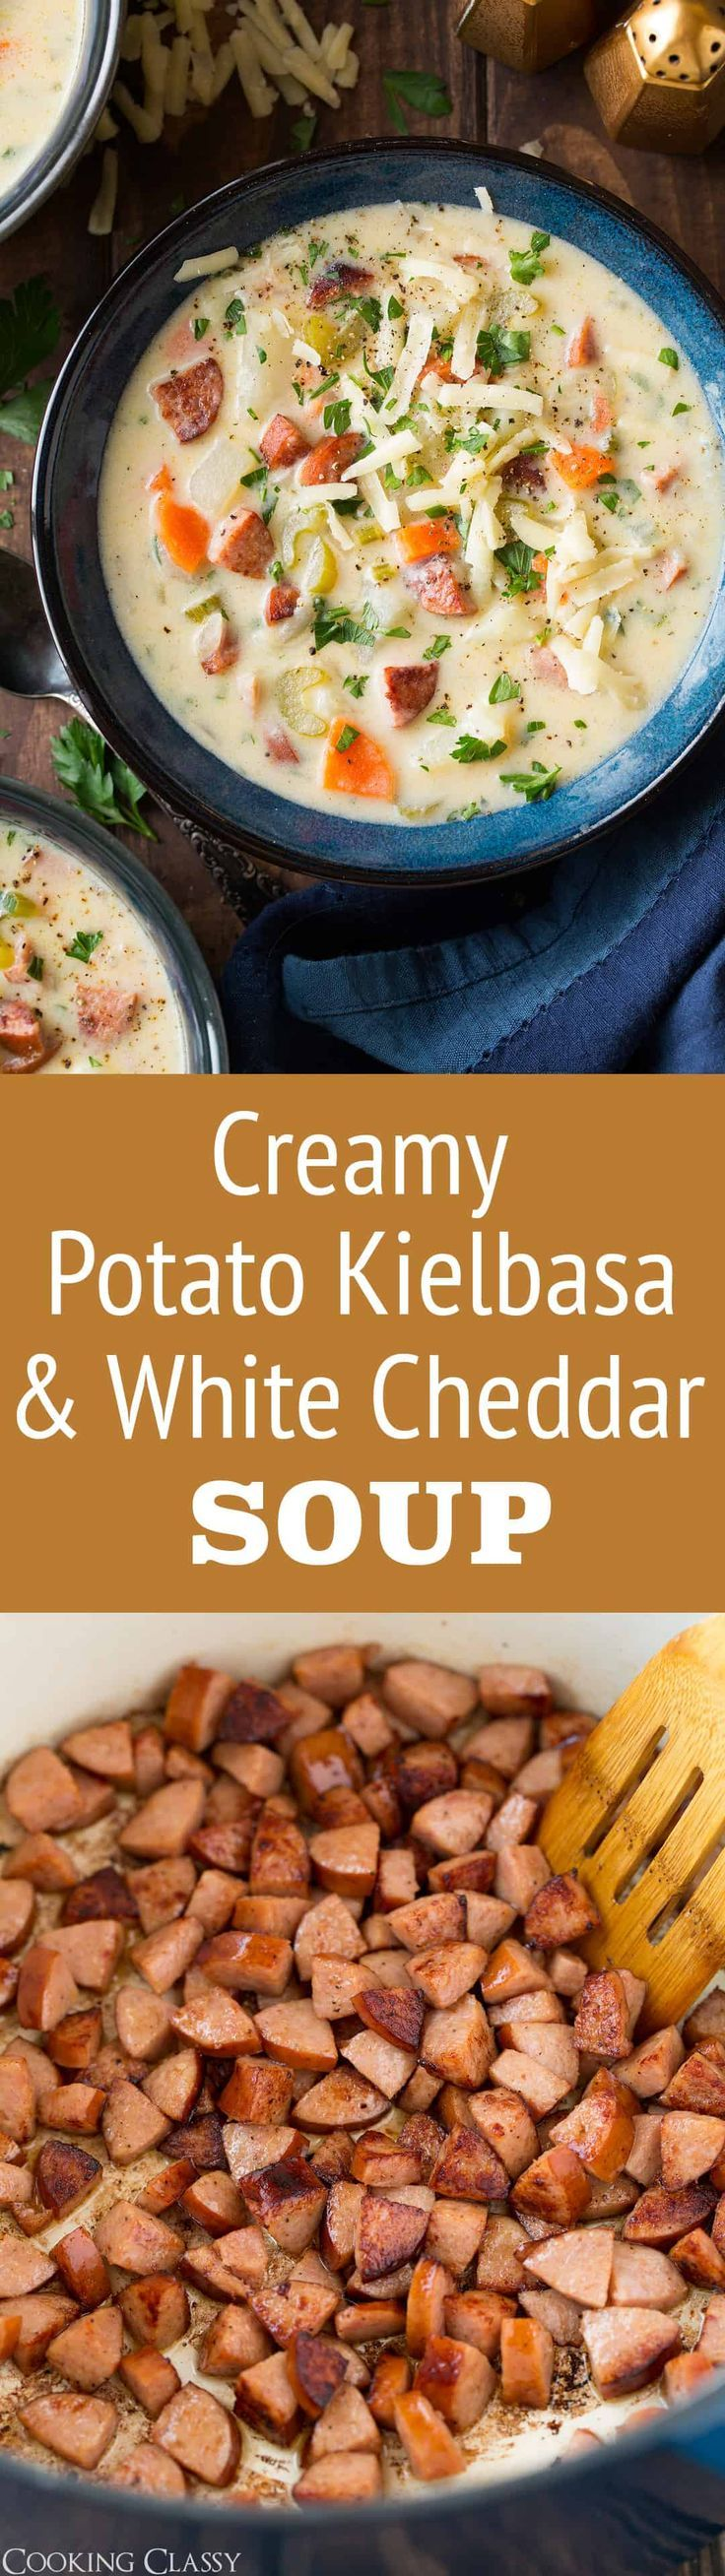 Creamy Potato Kielbasa and White Cheddar Soup - An incredibly filling and perfectly comforting soup for a chilly day! It has a delicious flavor blend of sausage, white cheddar and potatoes and chances are the whole family will love it! #soup #sausage #potatosoup #dinner #comfortfood via @cookingclassy